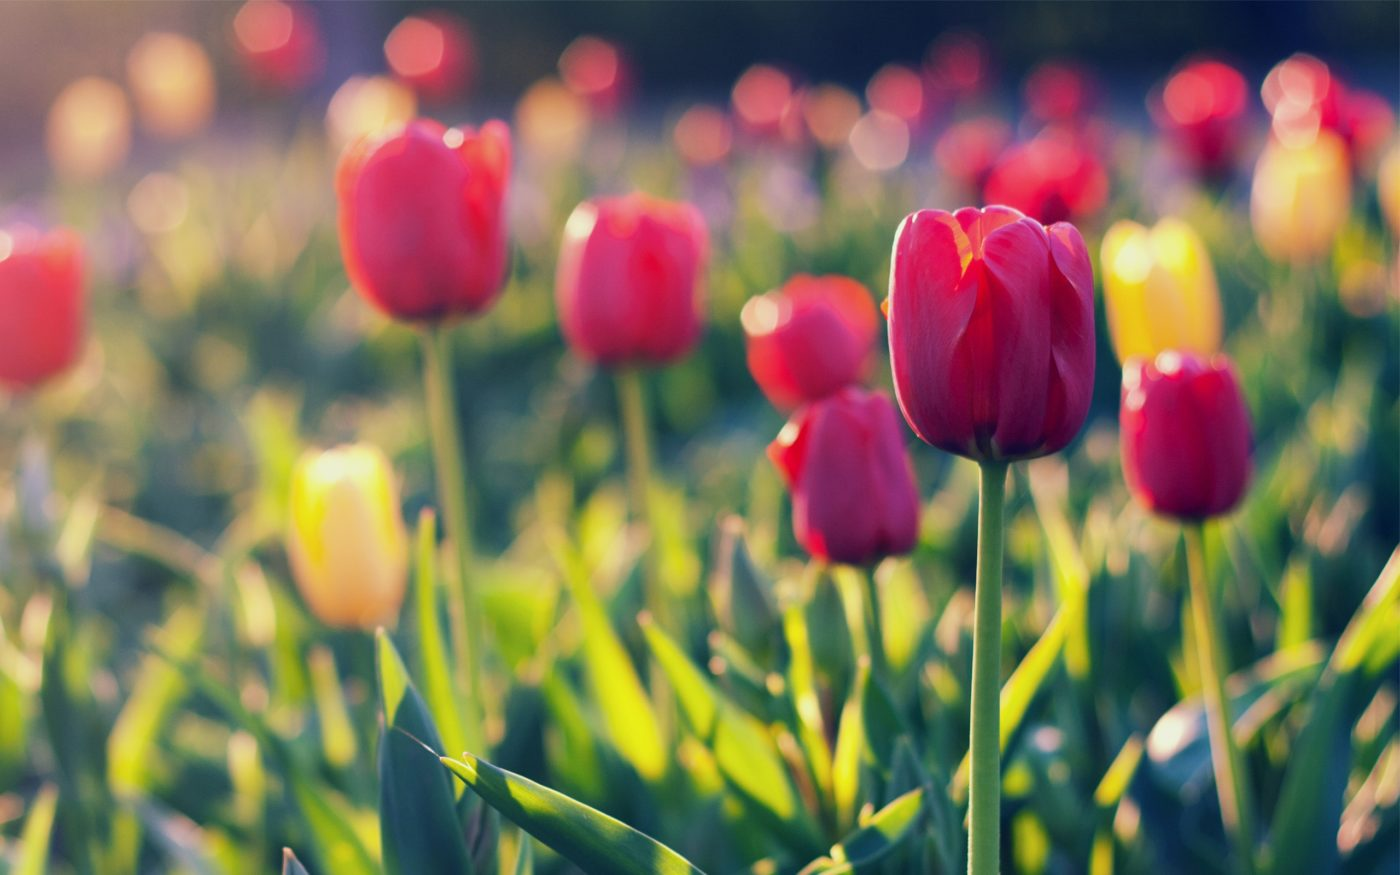 Summer-garden-tulip-blurred-background_2560x1600